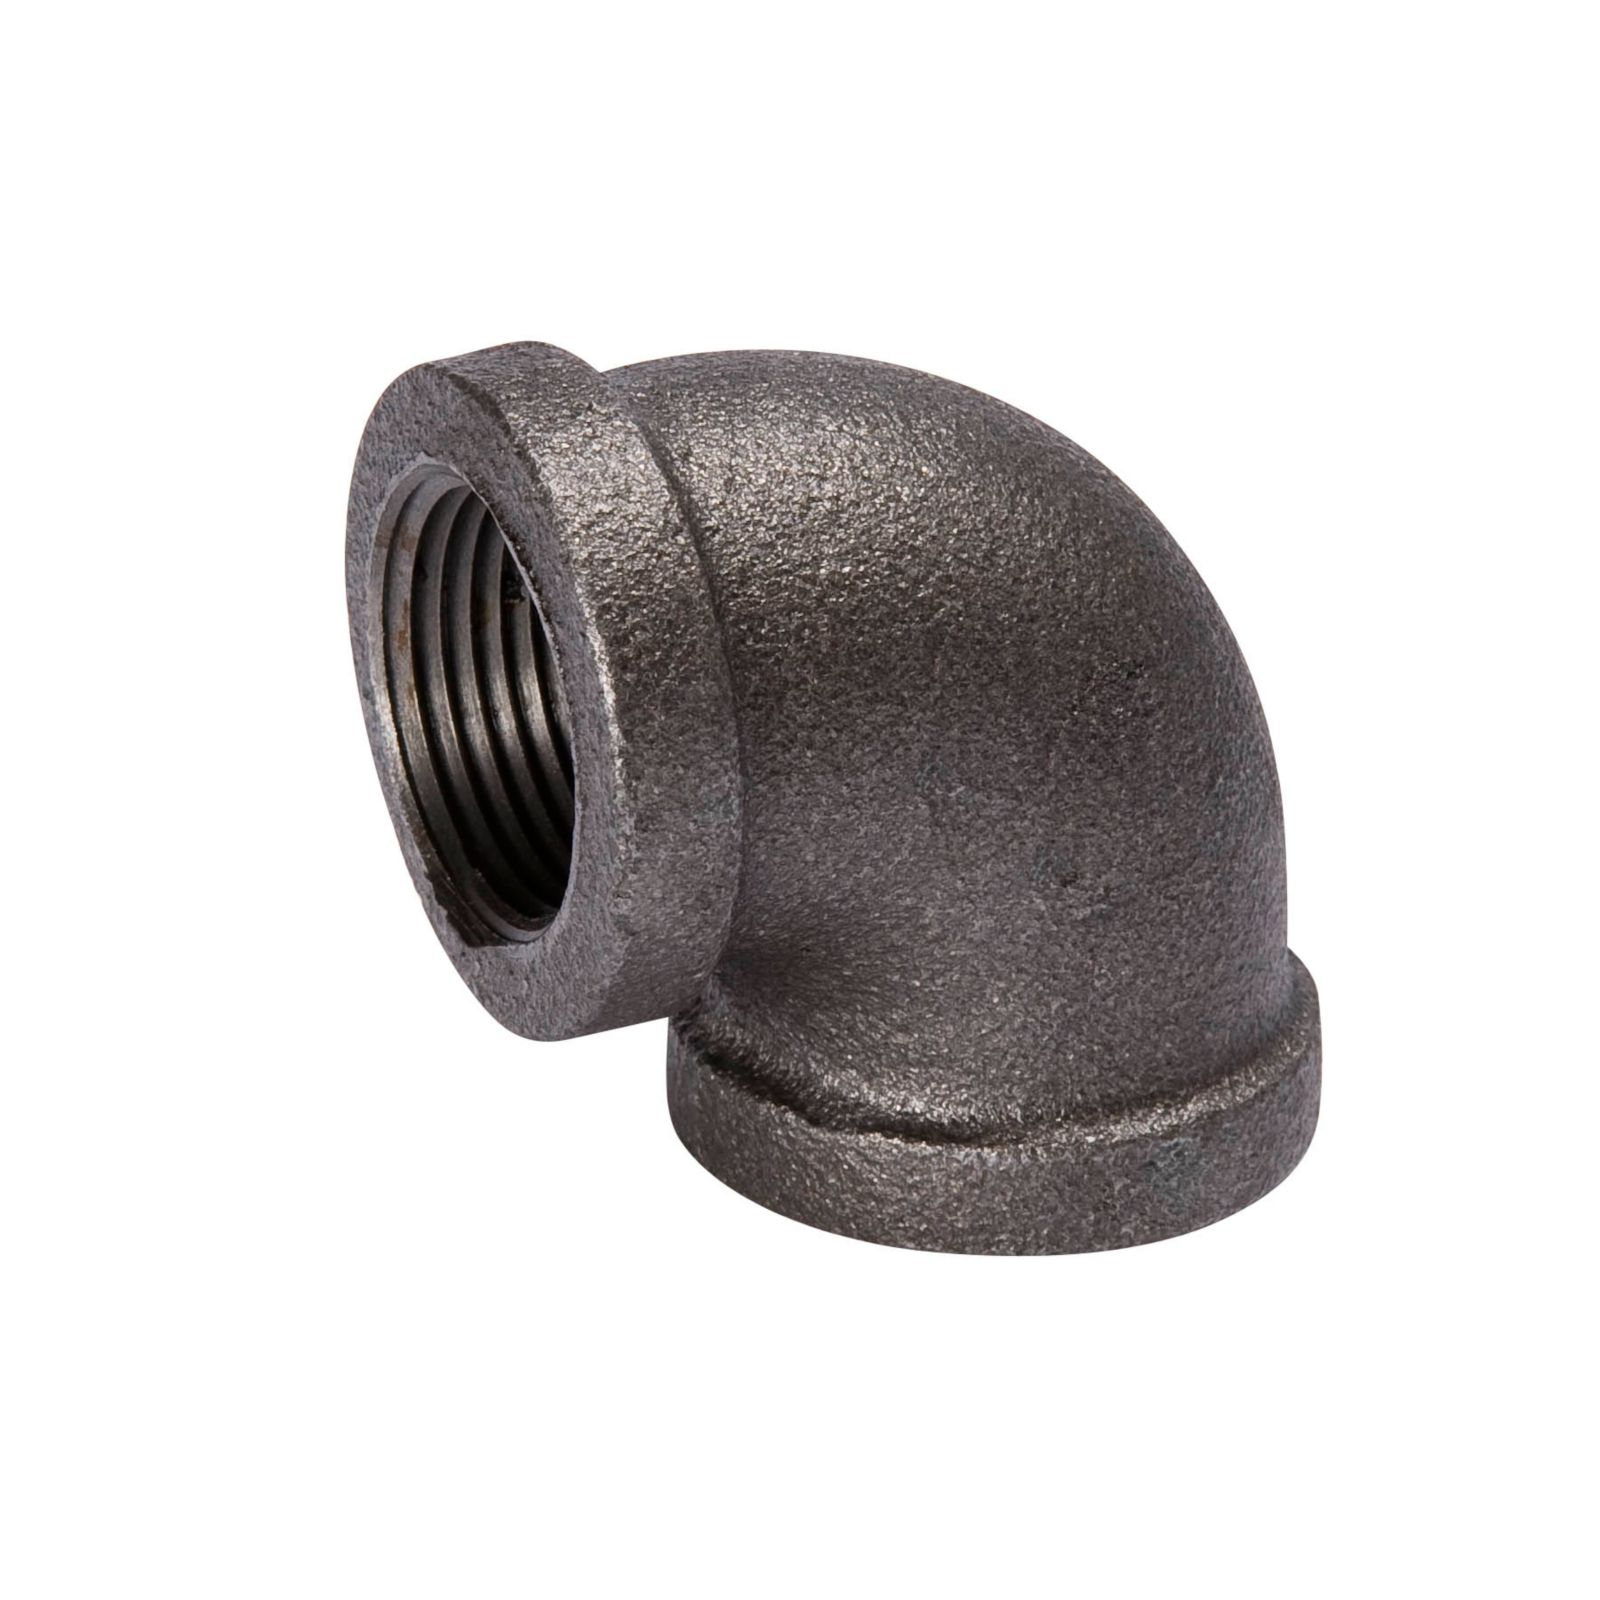 "Southland 520-003 - Black 90 Degree Elbow, 1/2"" I.D."